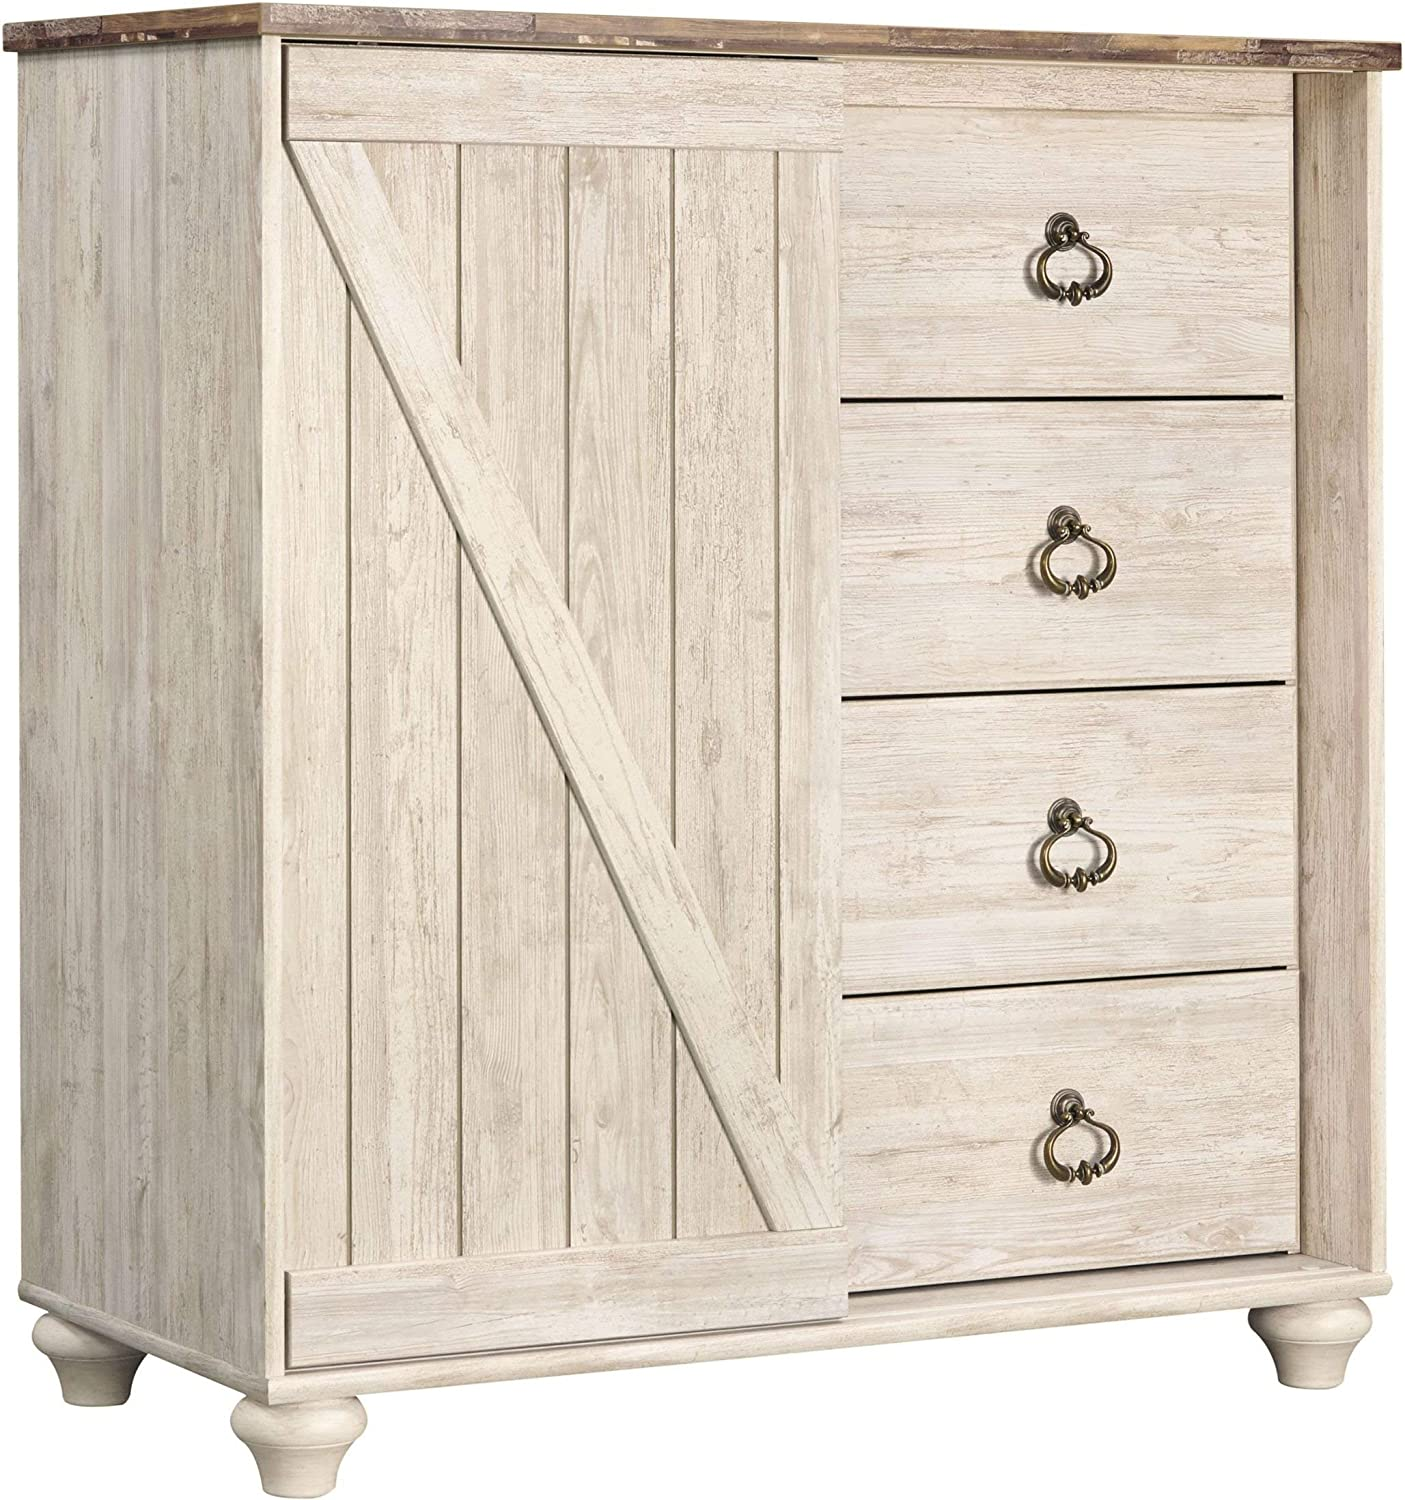 Ashley Furniture Signature Design - Willowton Dressing Chest - Casual - 4 Drawers/Sliding Door Storage - Whitewash Finish/Faux Plank Top - Antiqued Brass Hardware